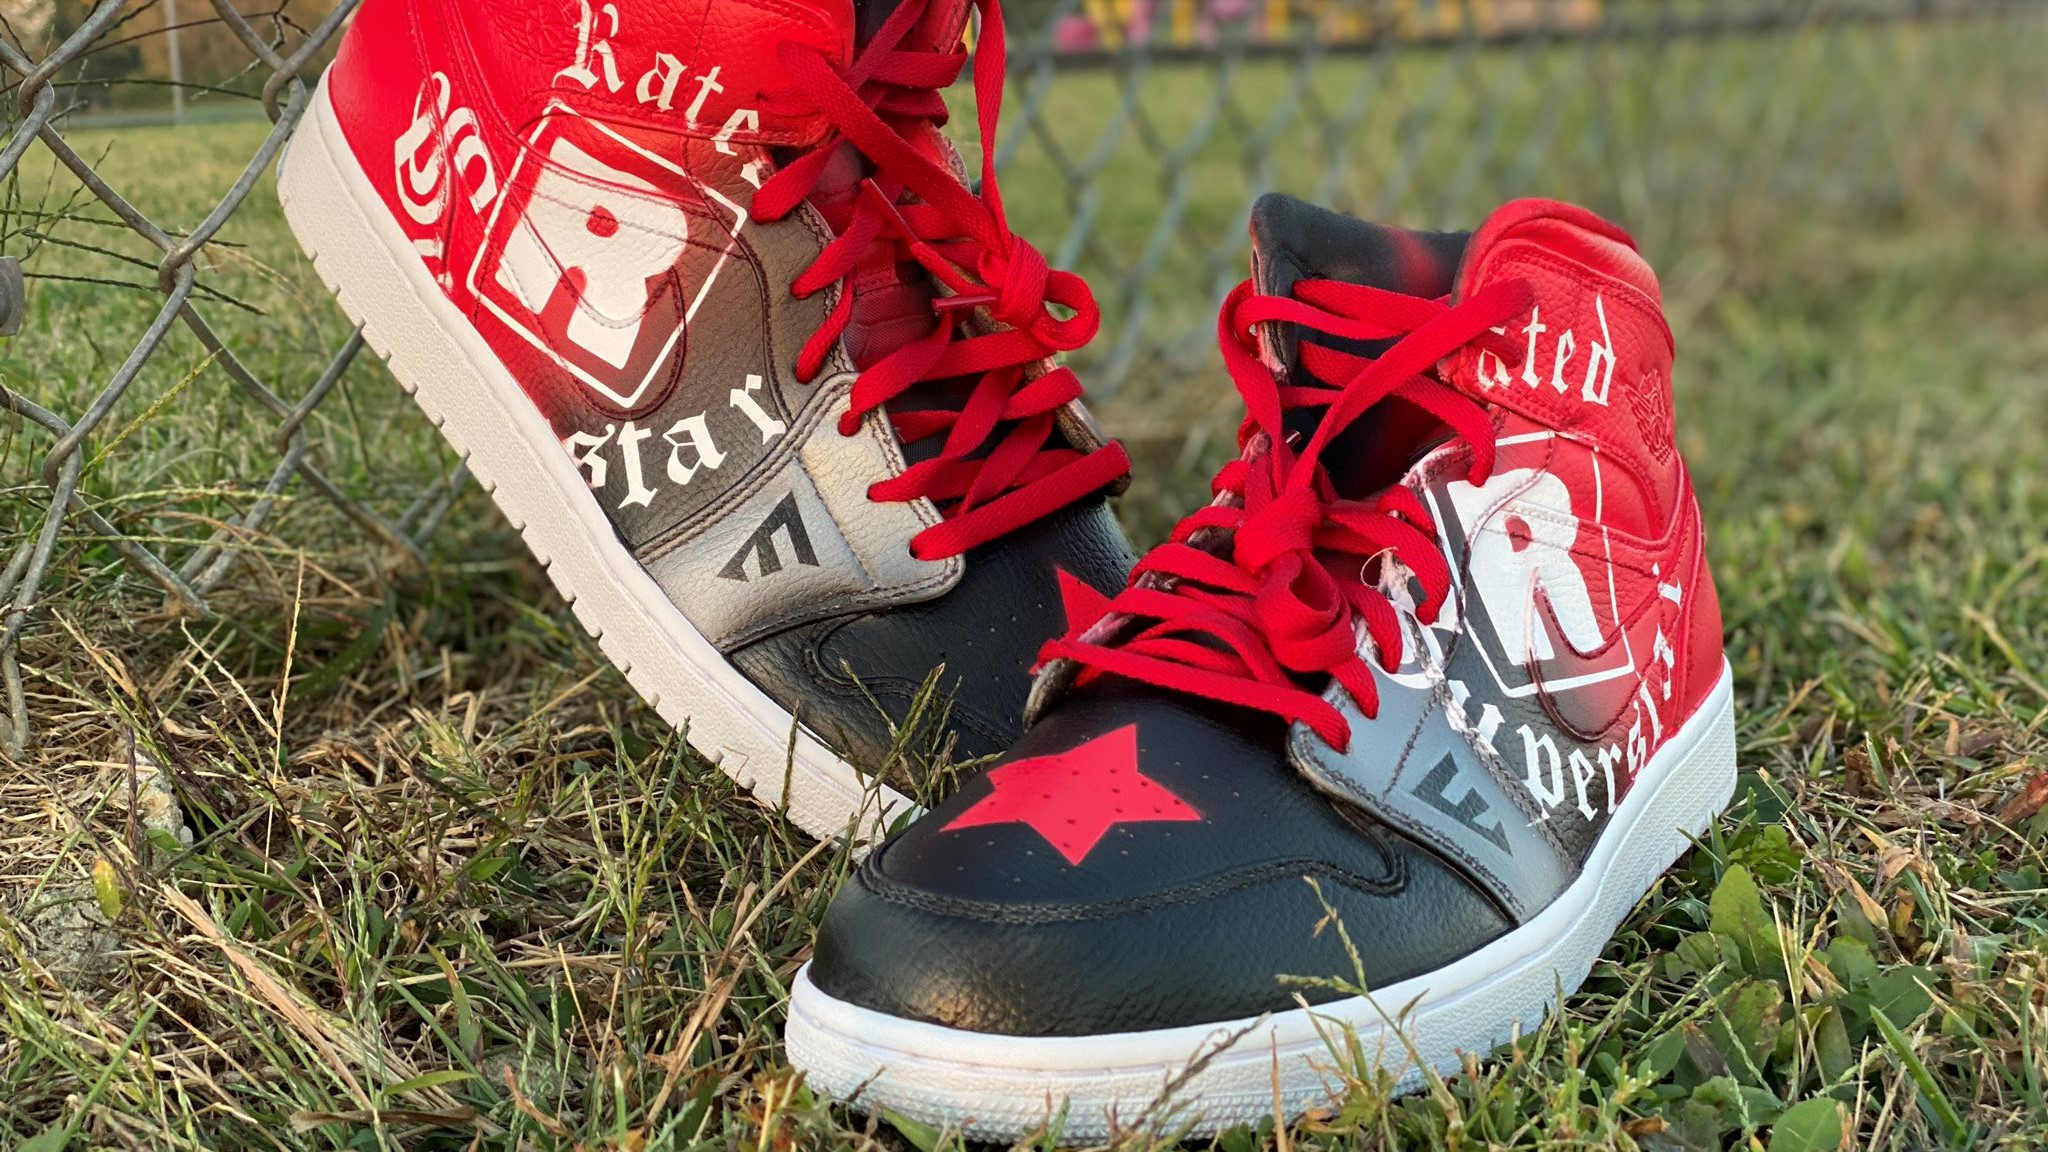 Custom Air Jordan 1s with a design inspired by WWE's Edge